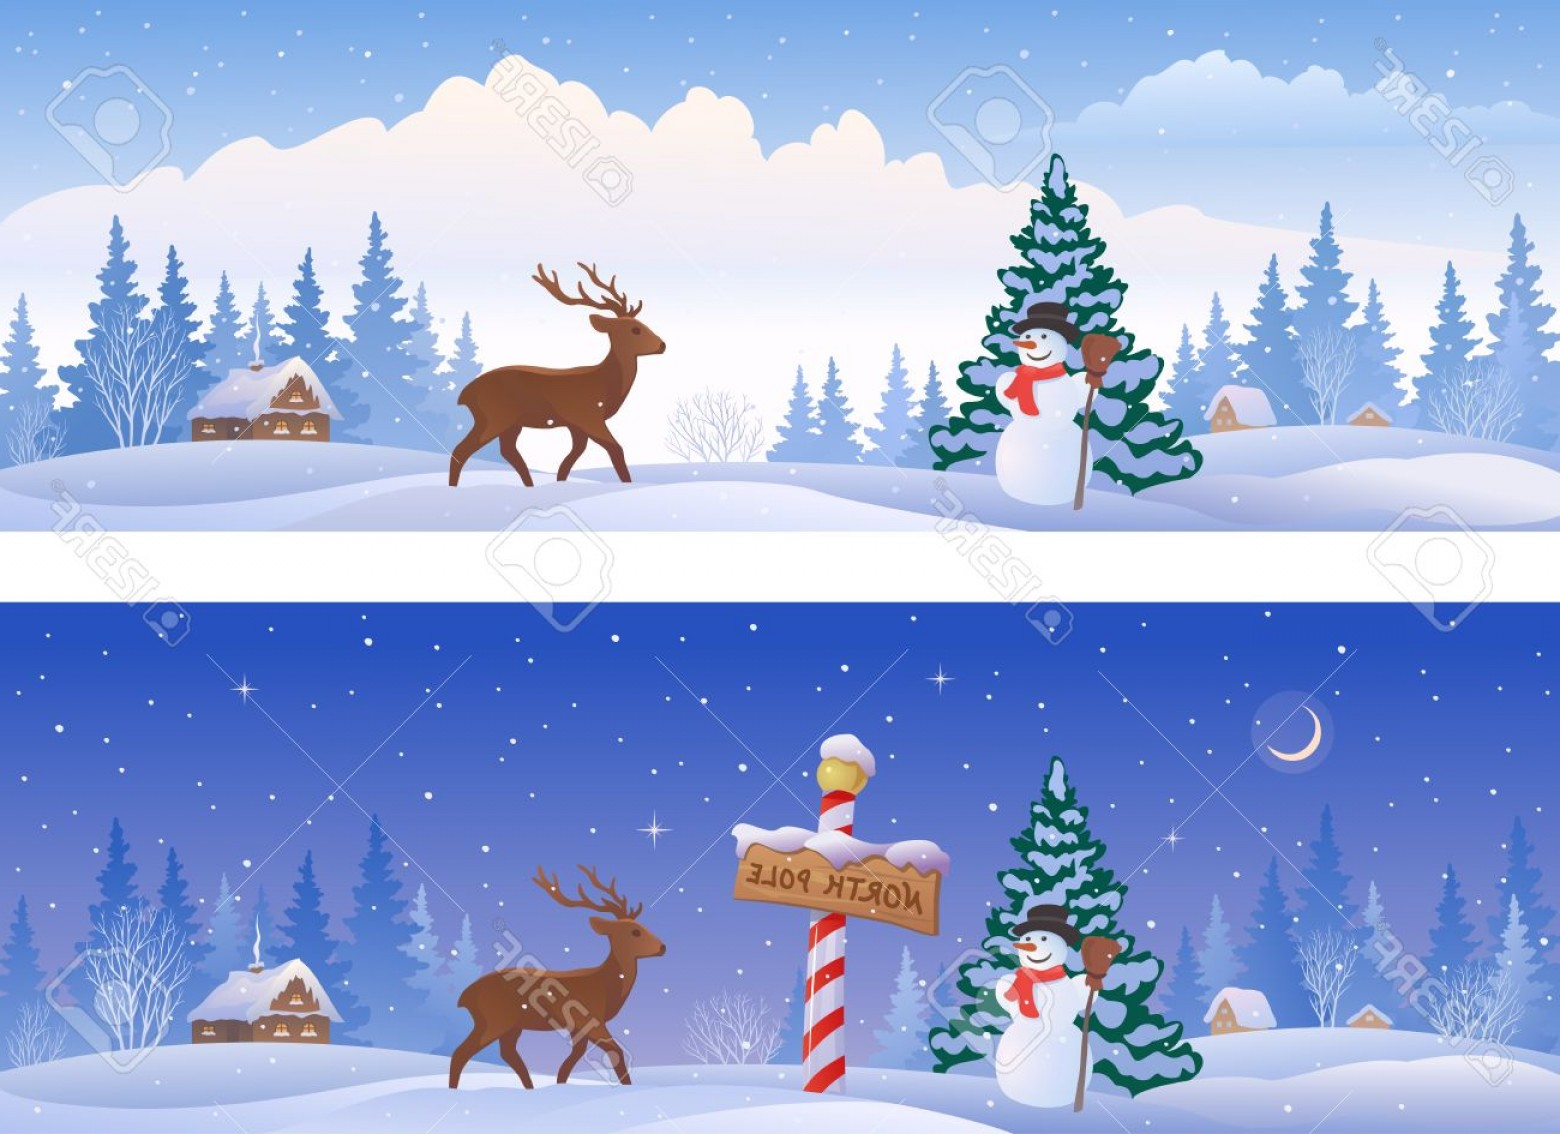 North Pole Landscape Vector: Photostock Vector Illustration Of Christmas Landscapes With A North Pole Sign A Snowman And A Deer Panoramic Banners